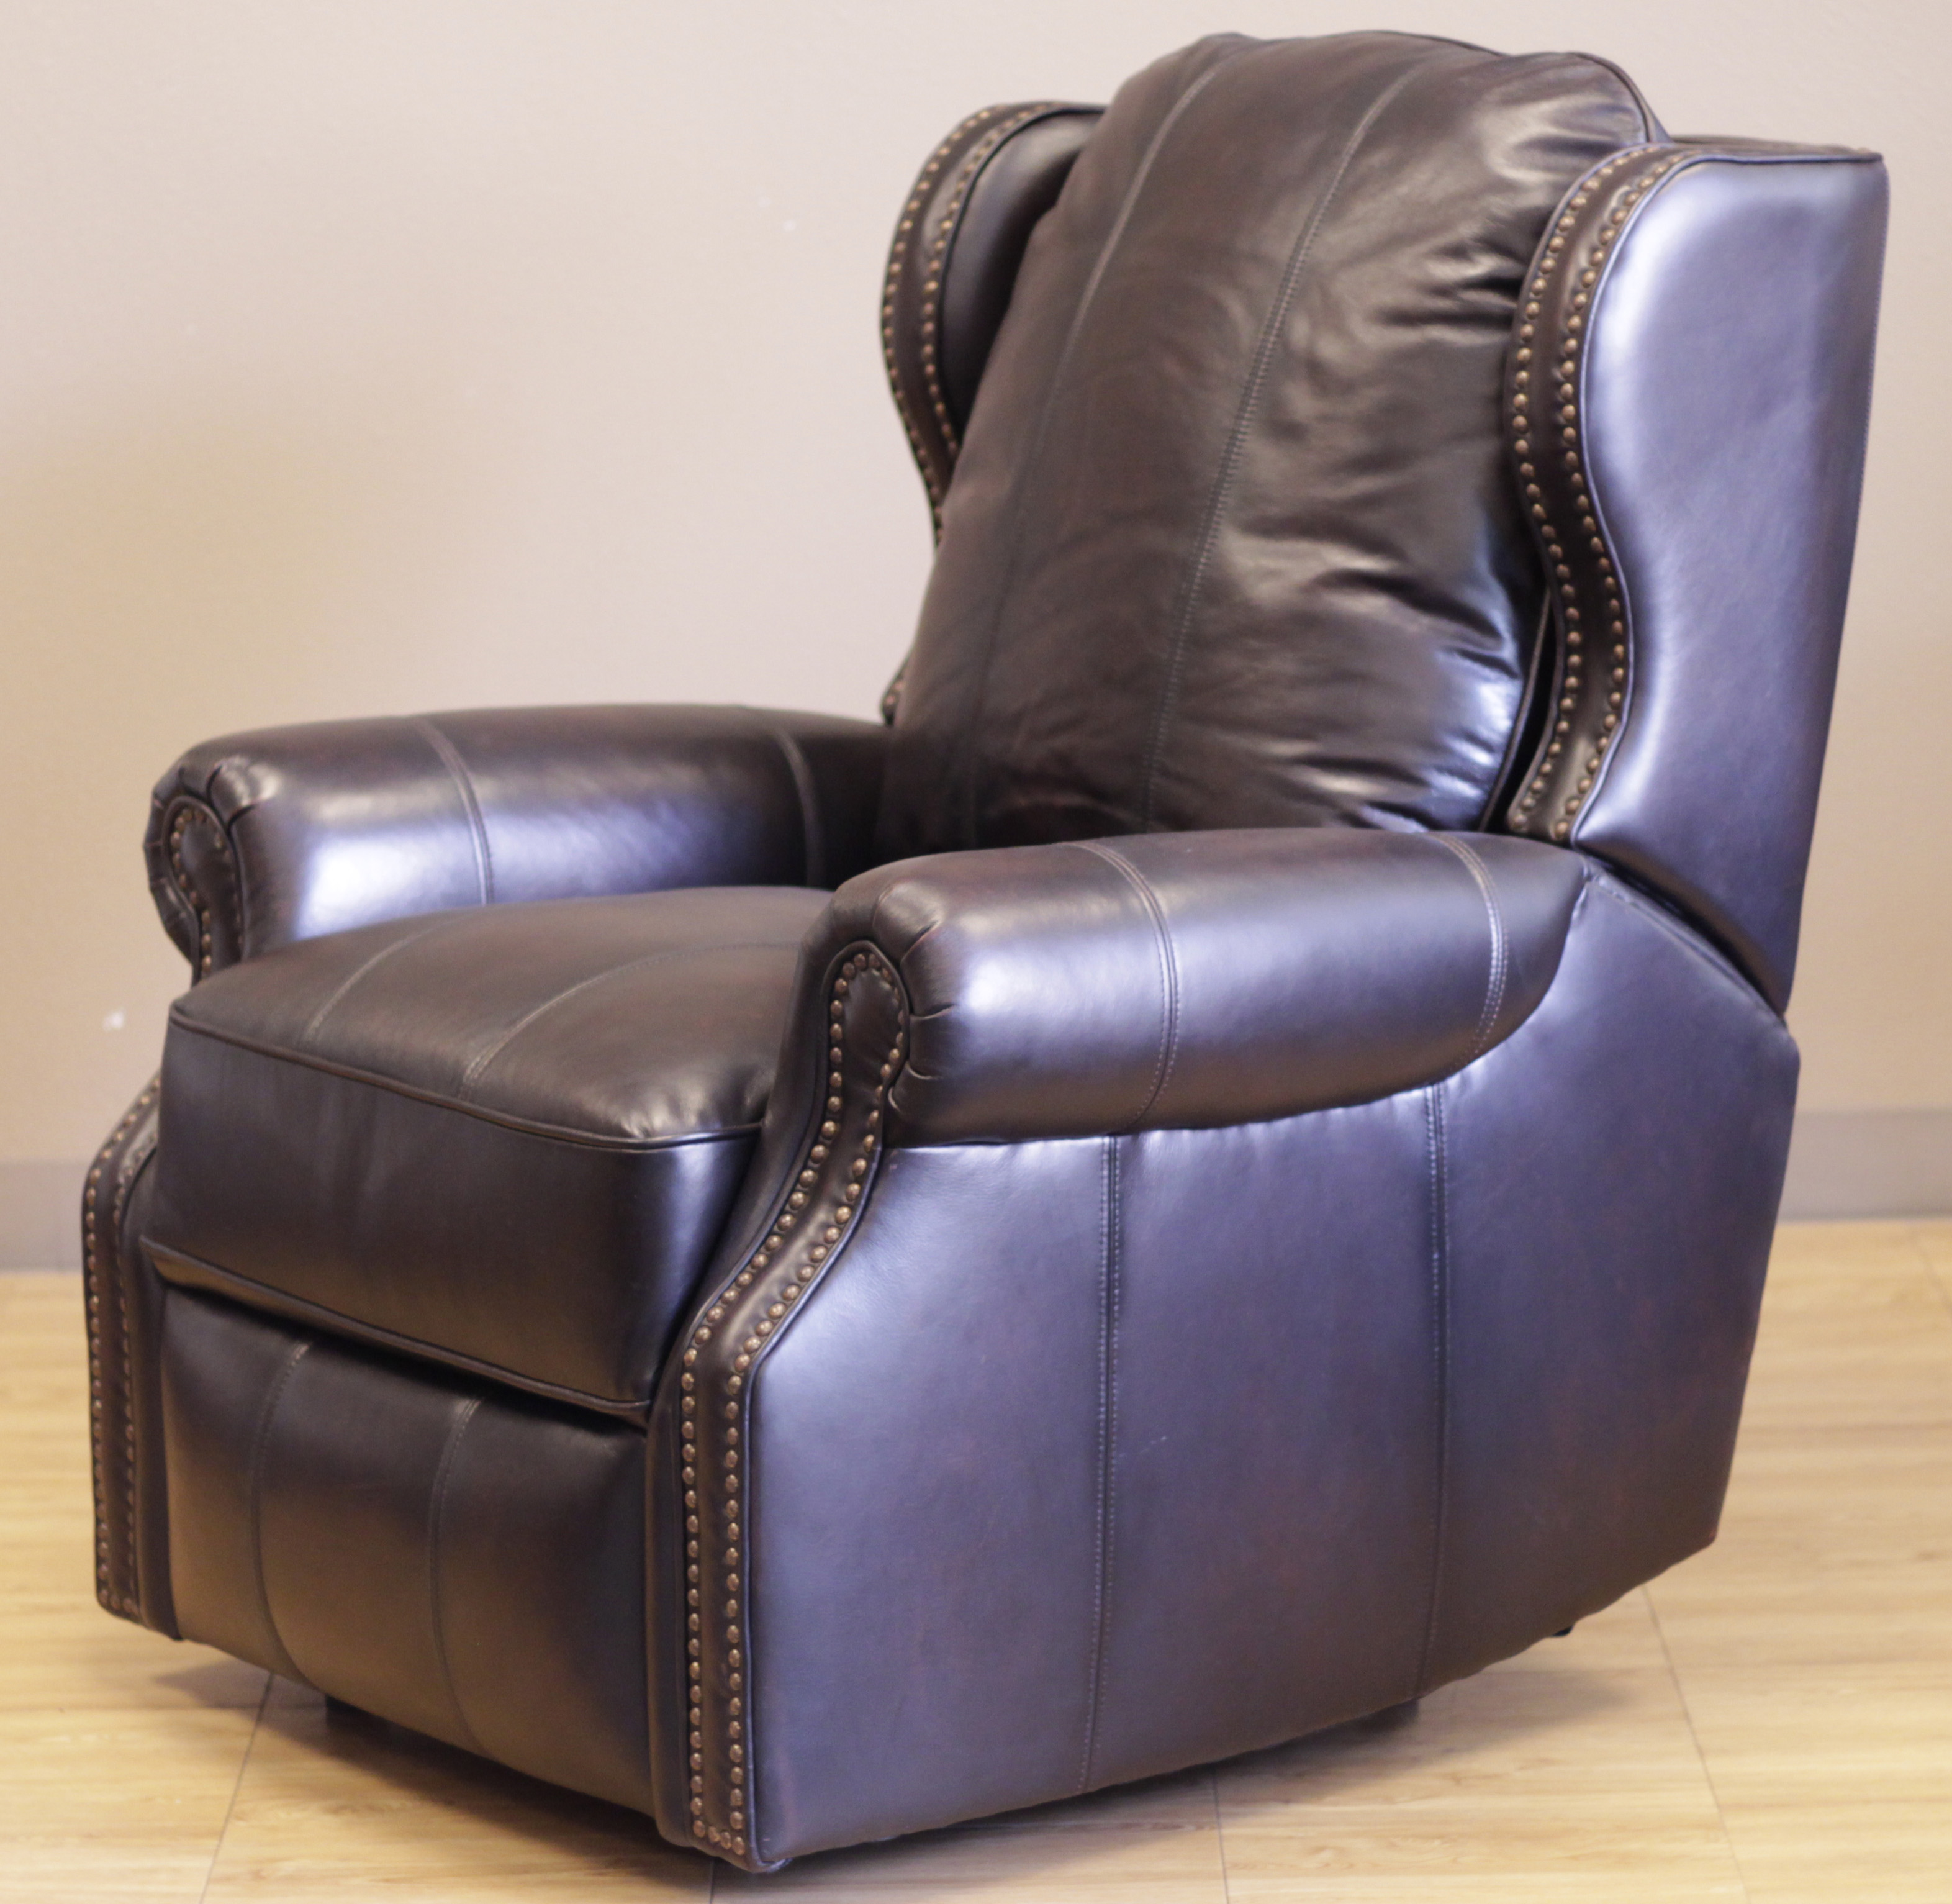 bristol ii recliner chair pearlized black leather